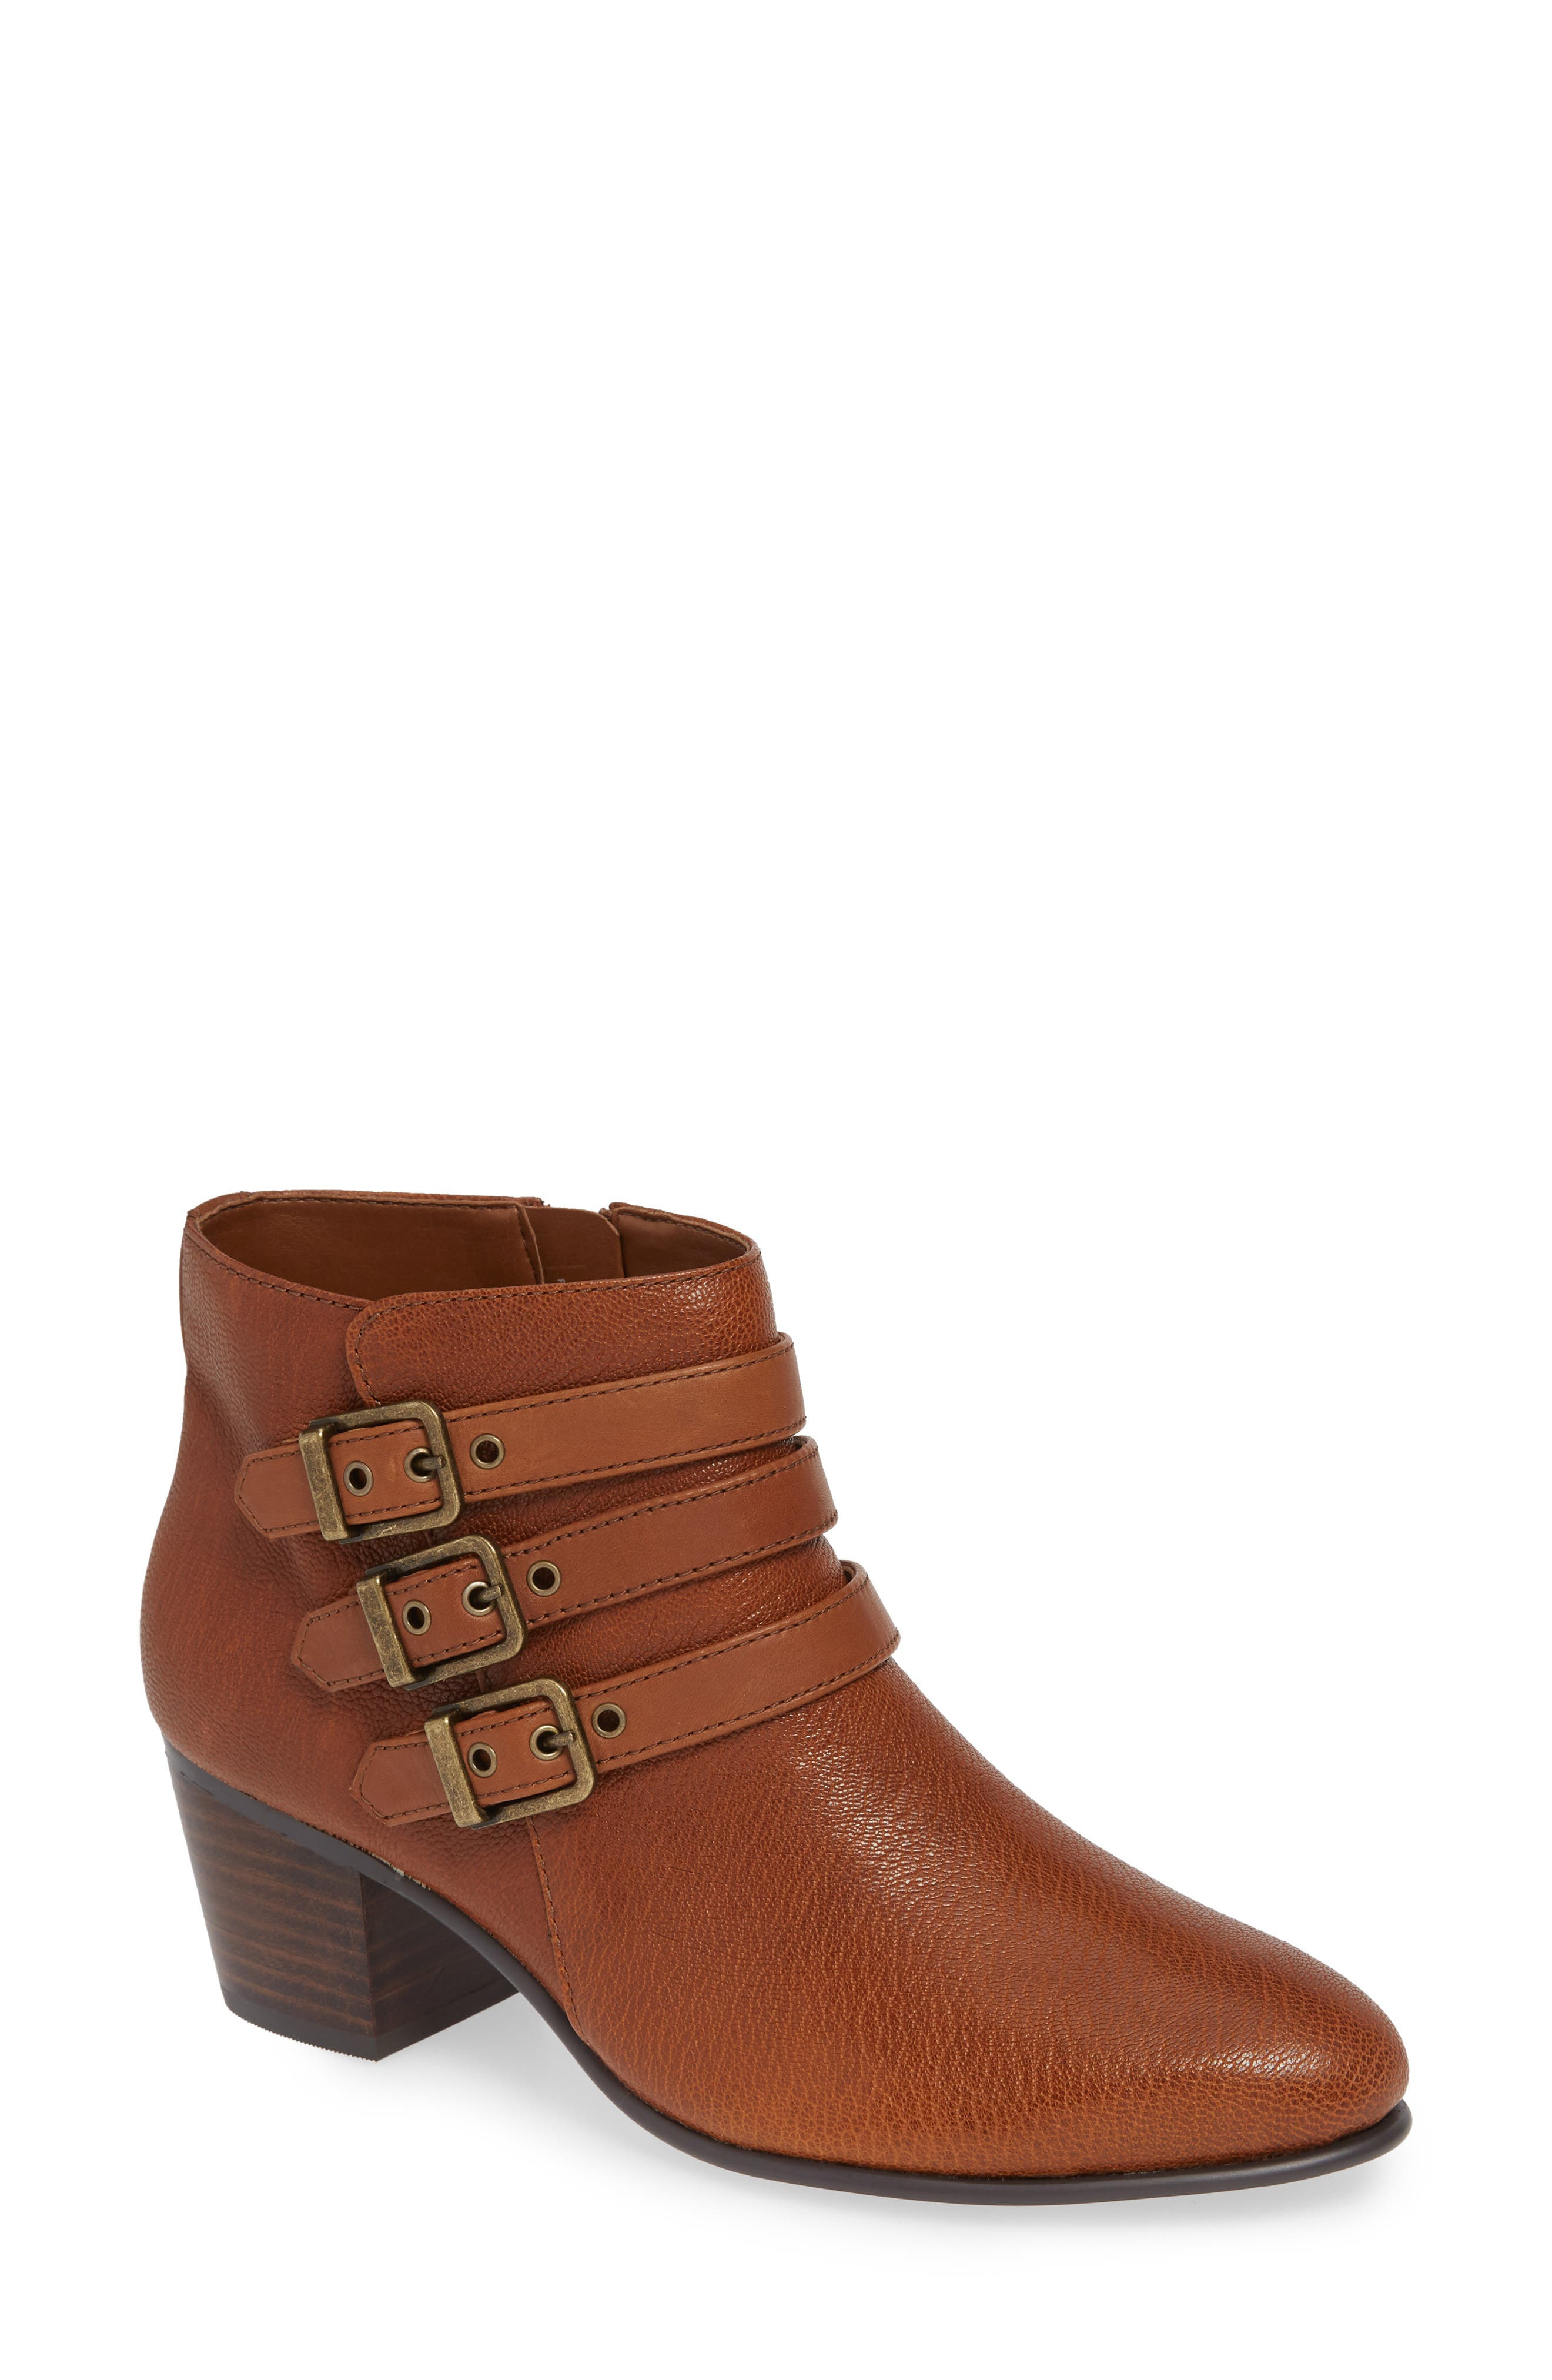 Maypearl Rayna Boot,                         Main,                         color, DARK TAN LEATHER